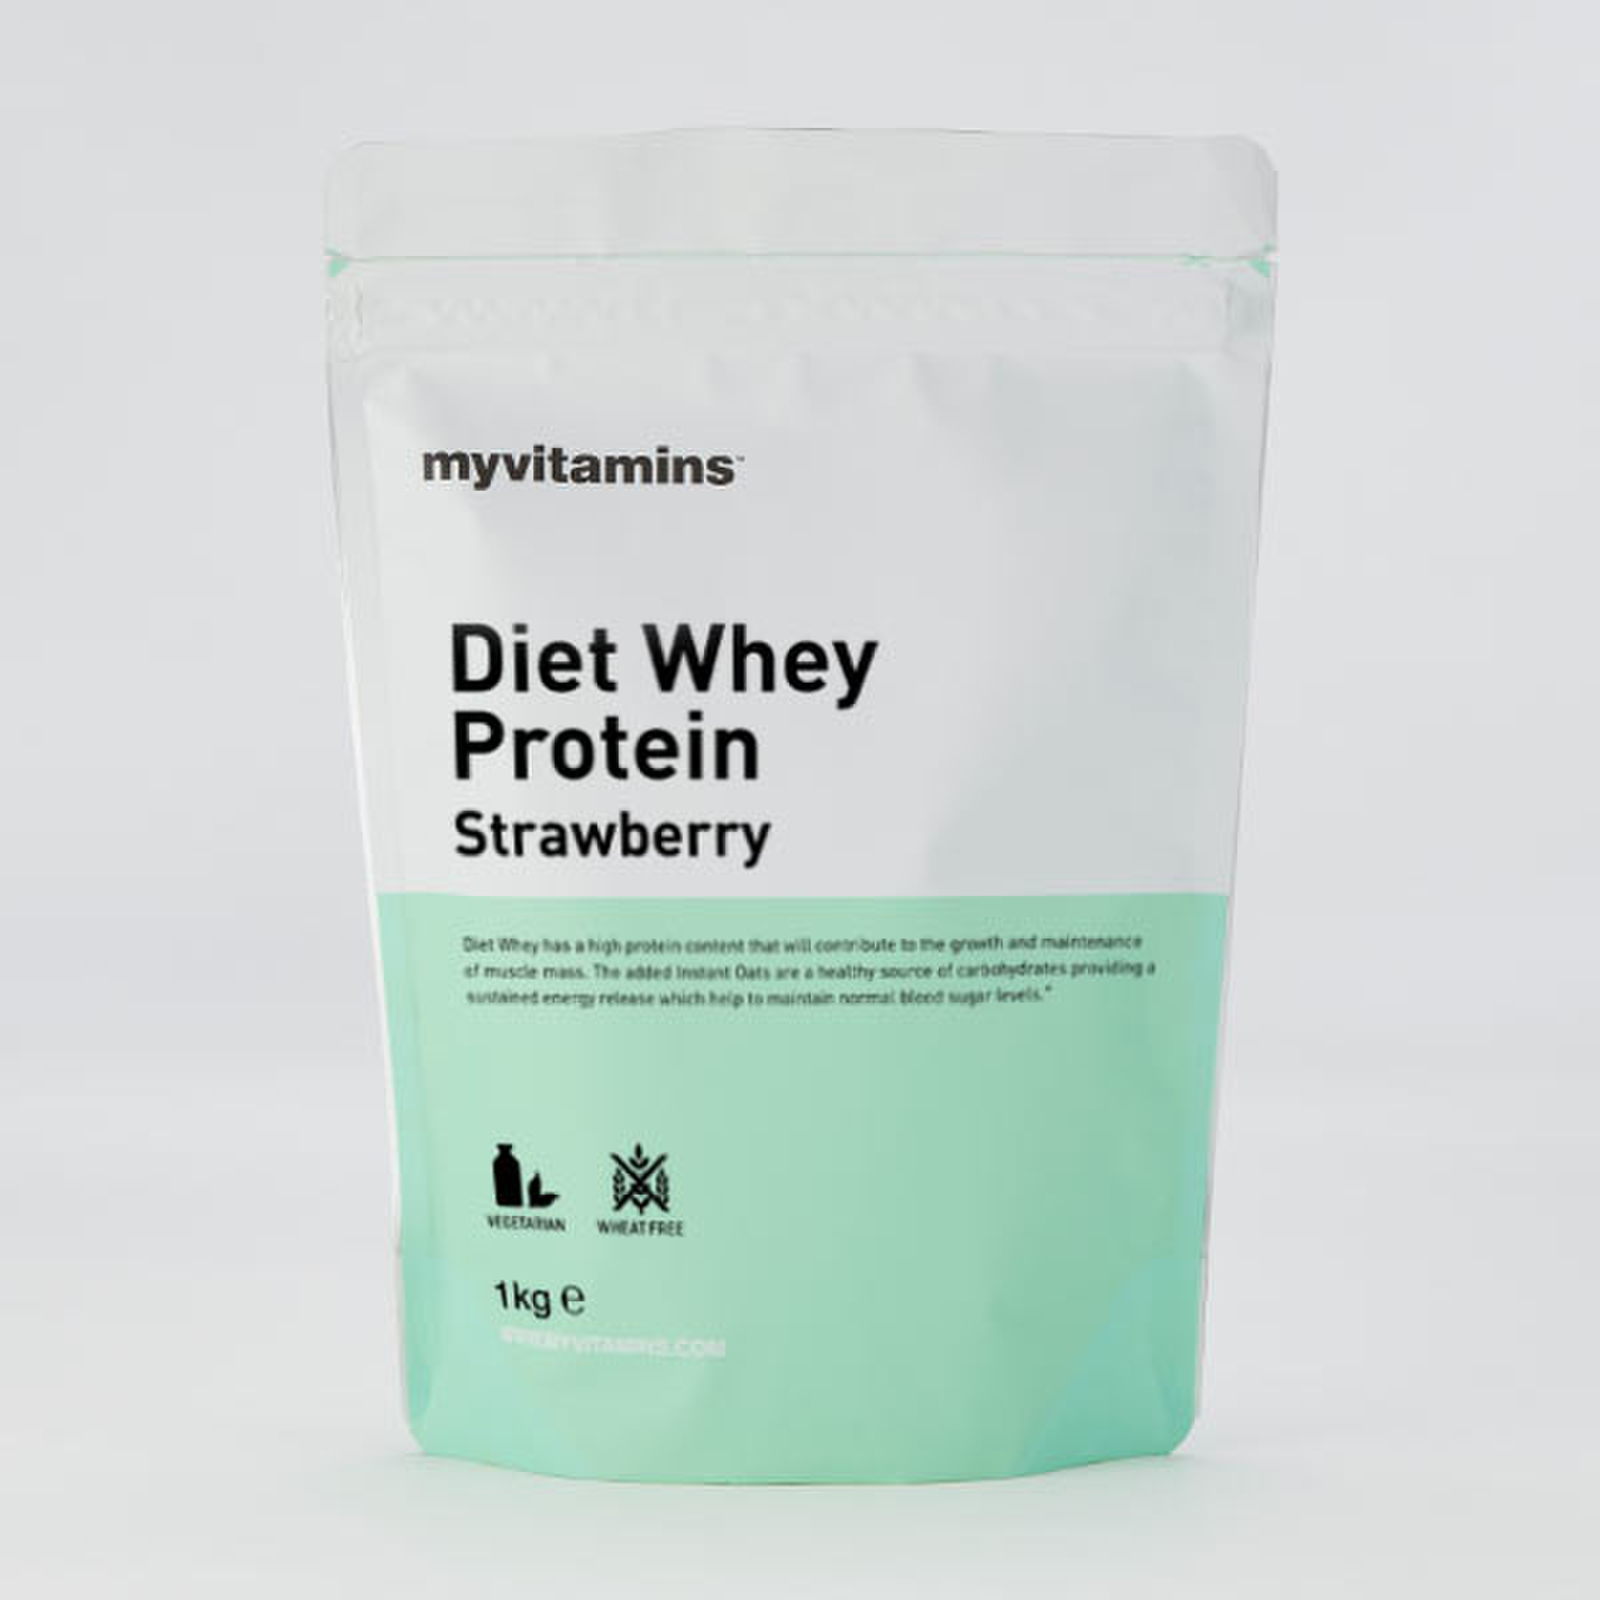 Diet Whey Protein - Strawberry 1kg